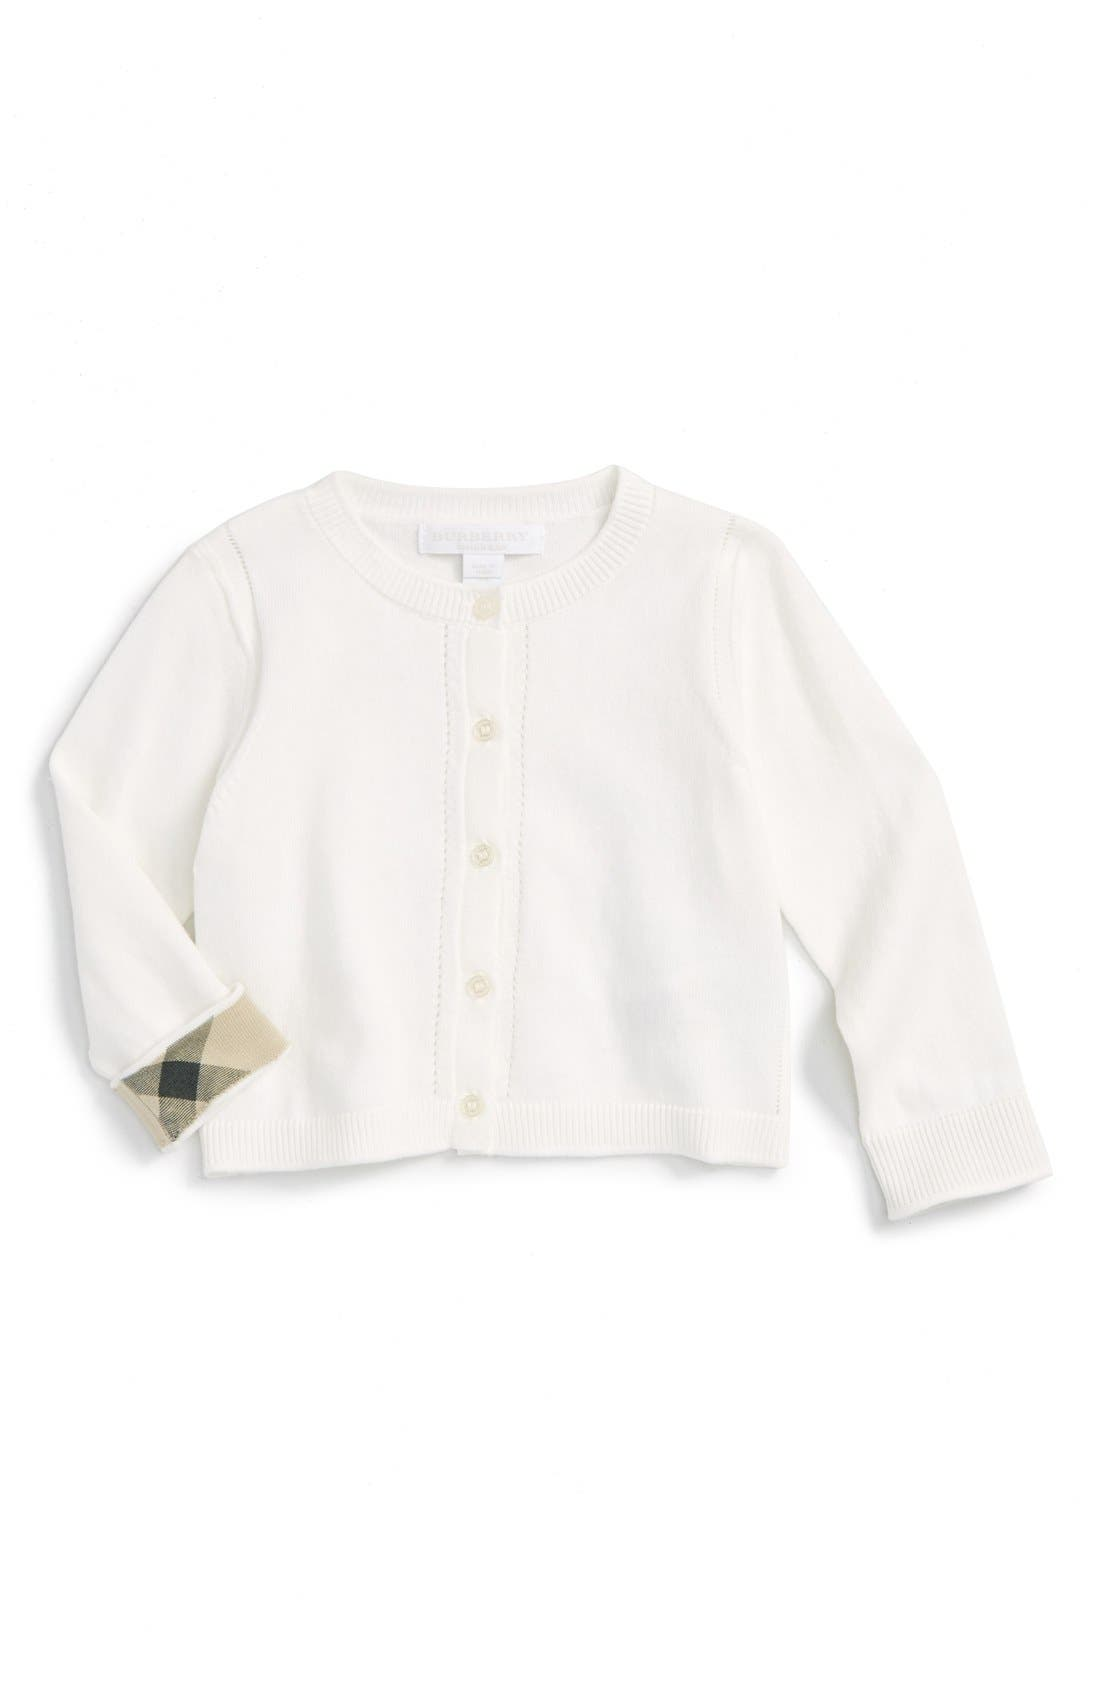 Alternate Image 1 Selected - Burberry 'Rheta' Cardigan (Baby Girls)